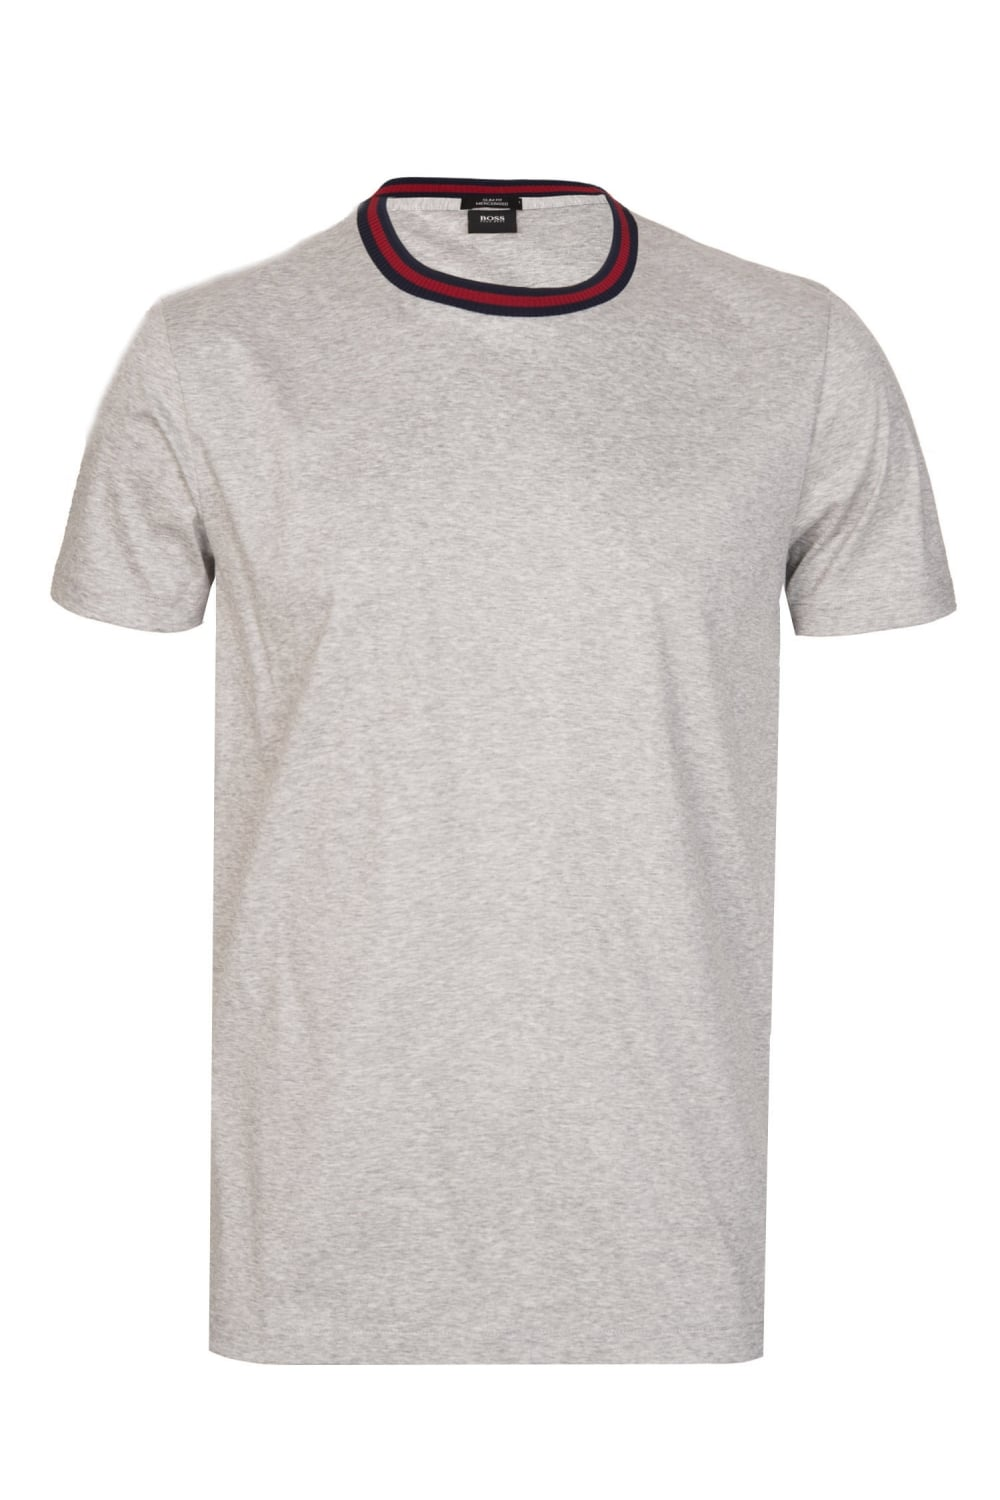 5586bbba Hugo Boss Tessler 64 Slim Fit T-Shirt Grey